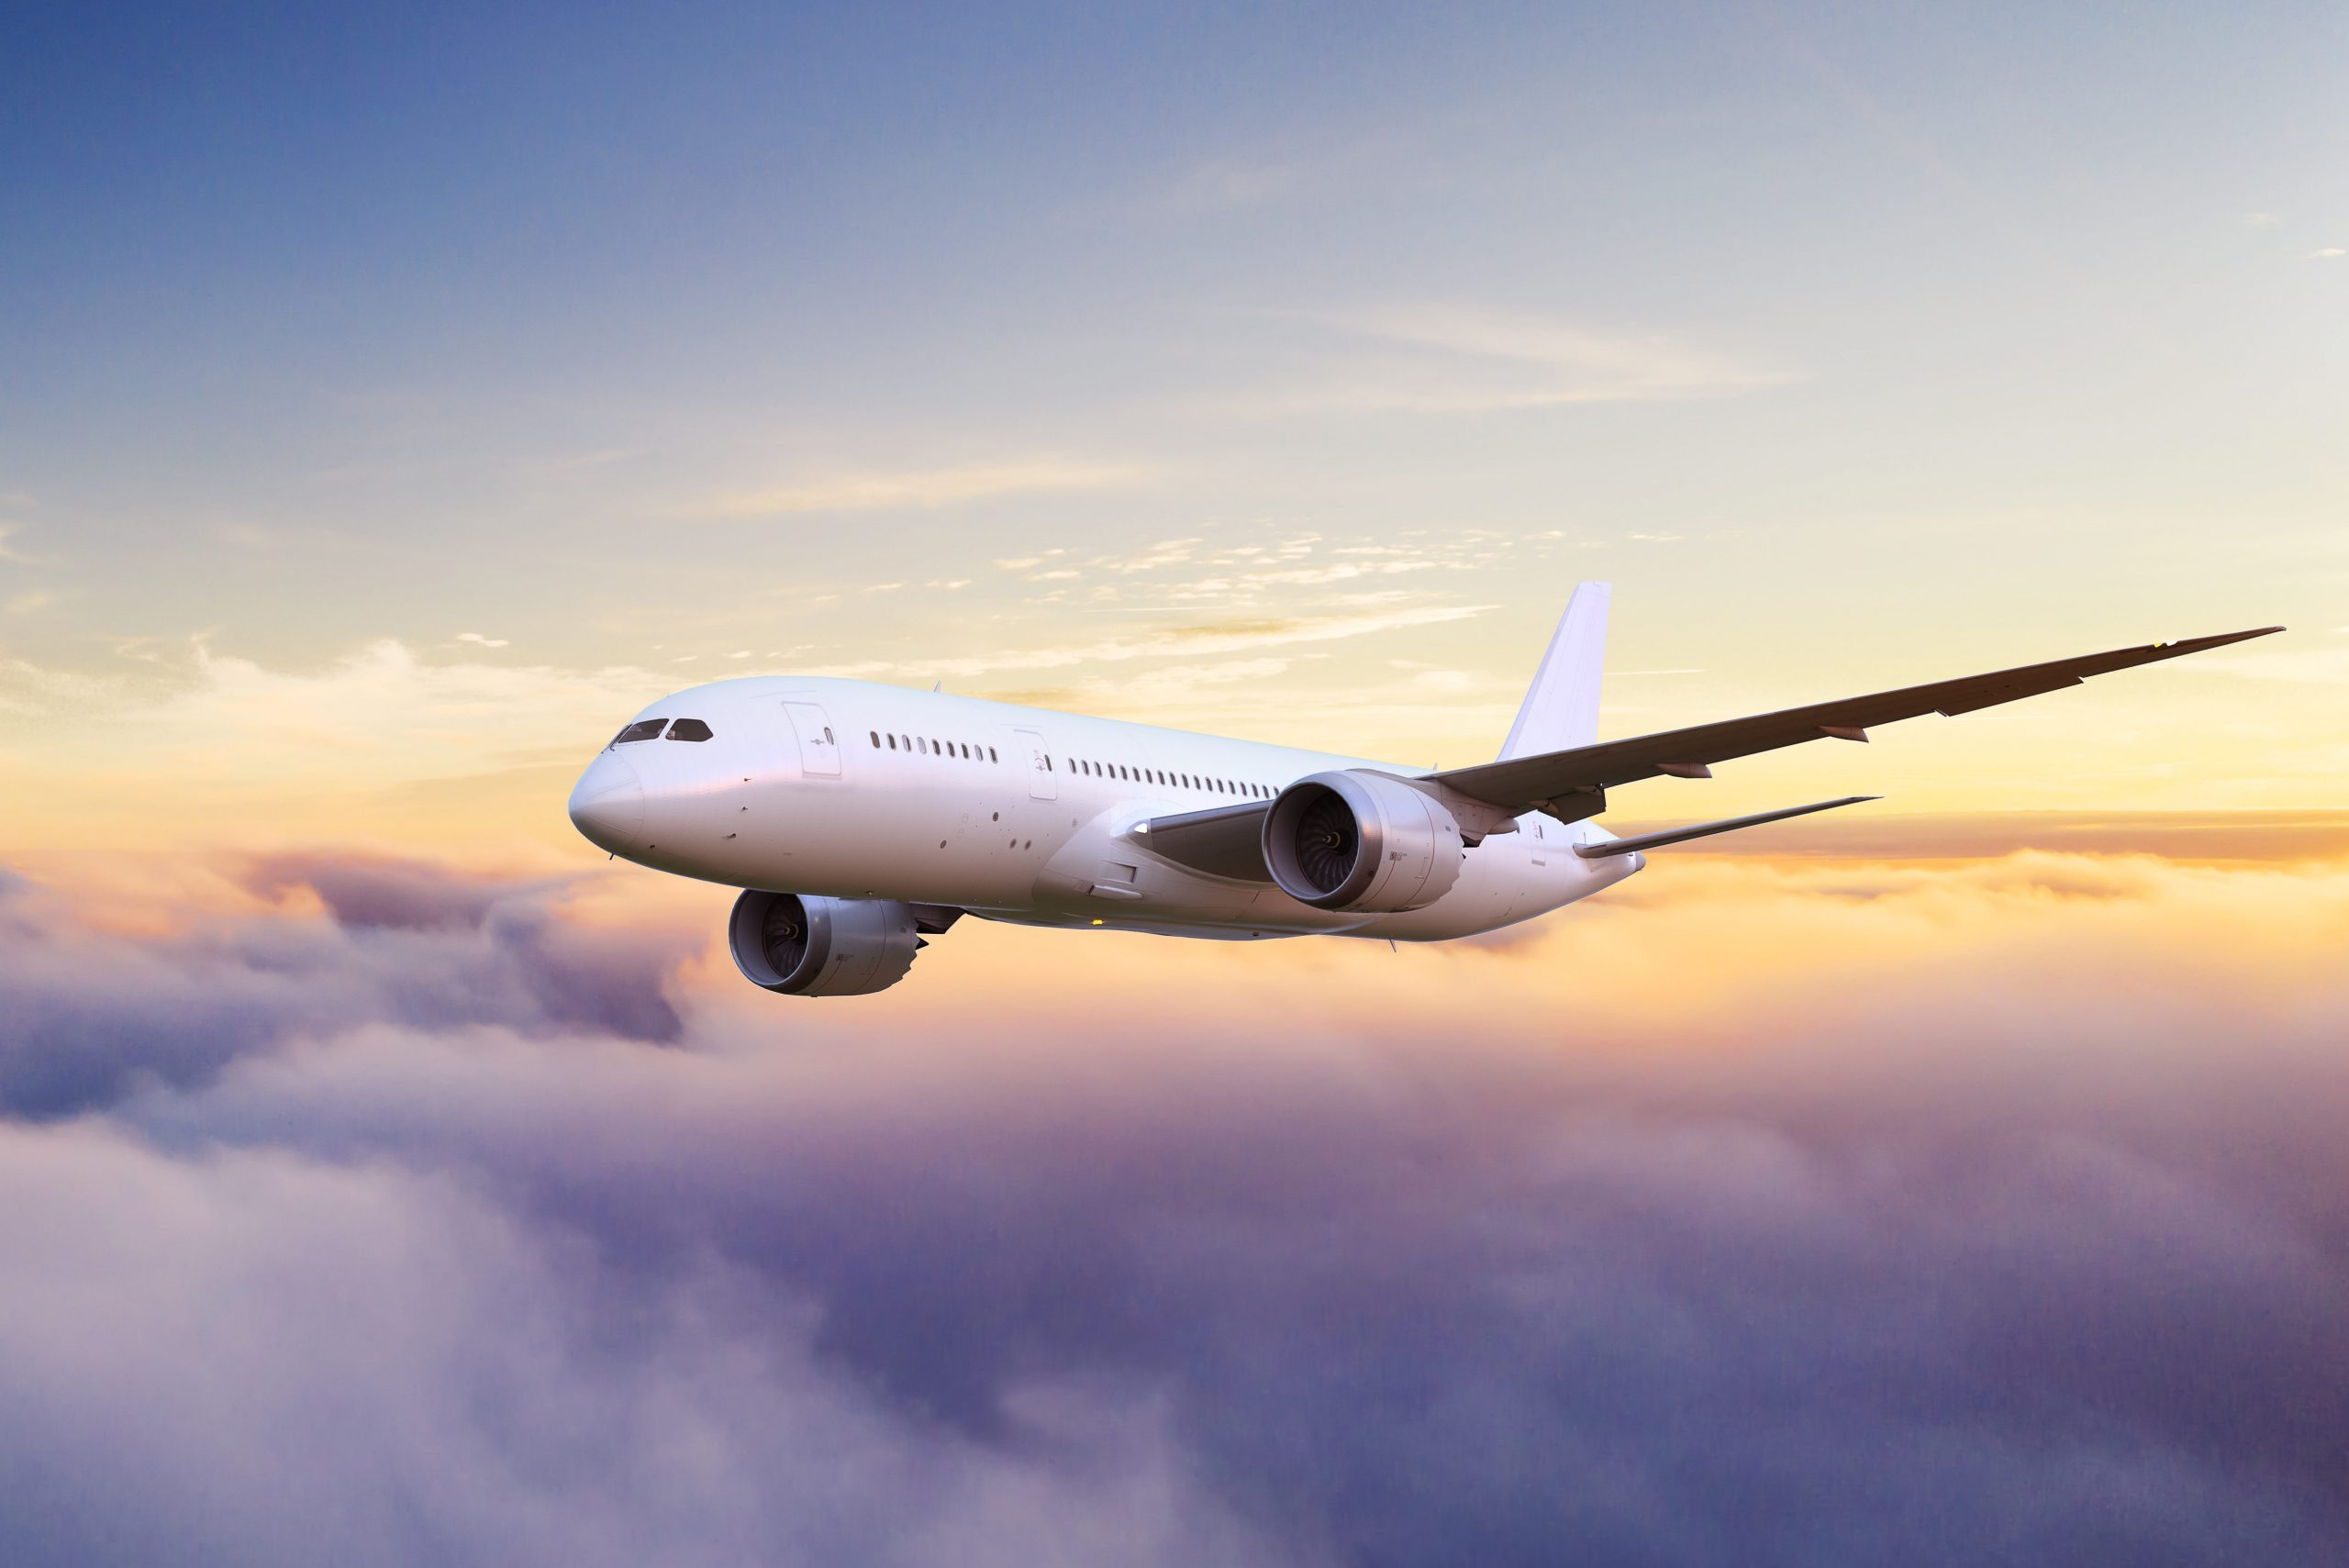 66% Fewer Flights In 2020